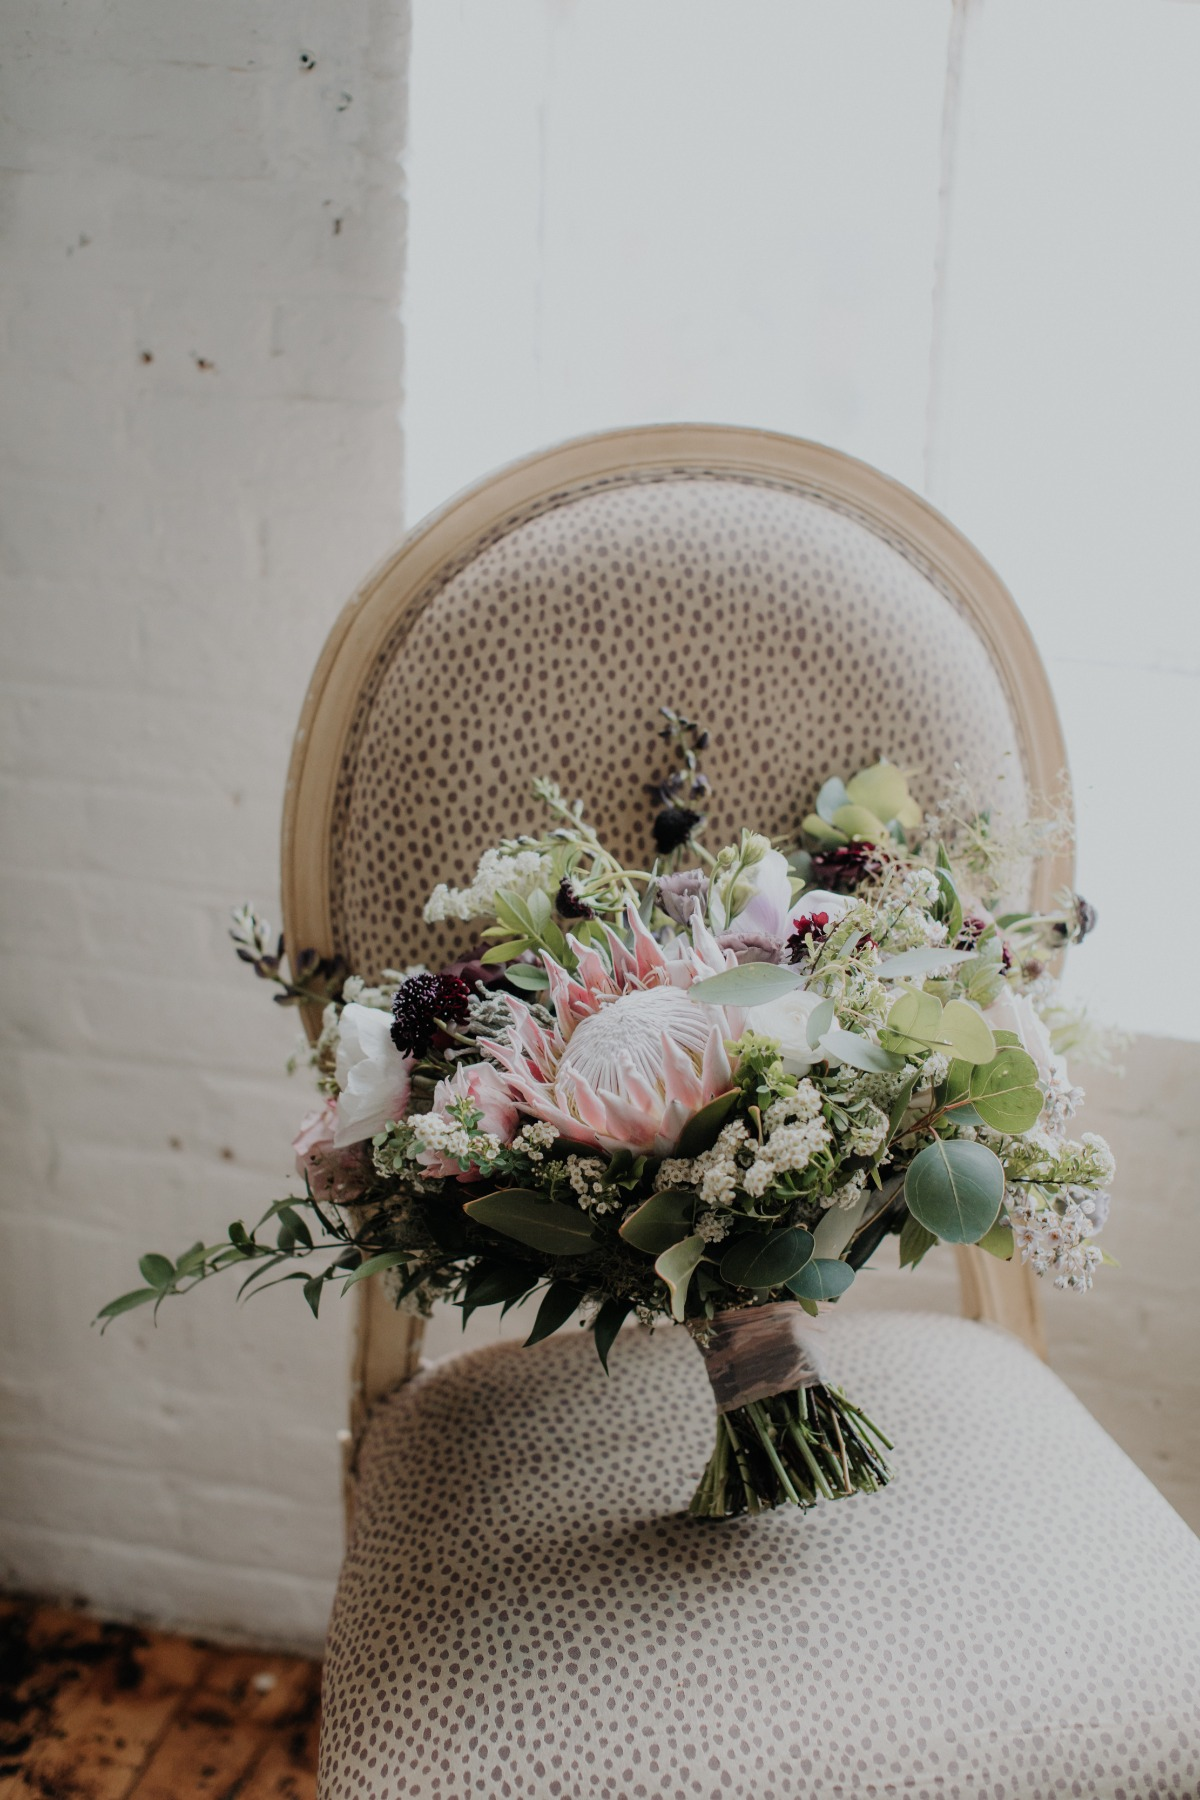 Protea and rose wedding bouquet designed by New Hampshire wedding florist, Apotheca Flowers.